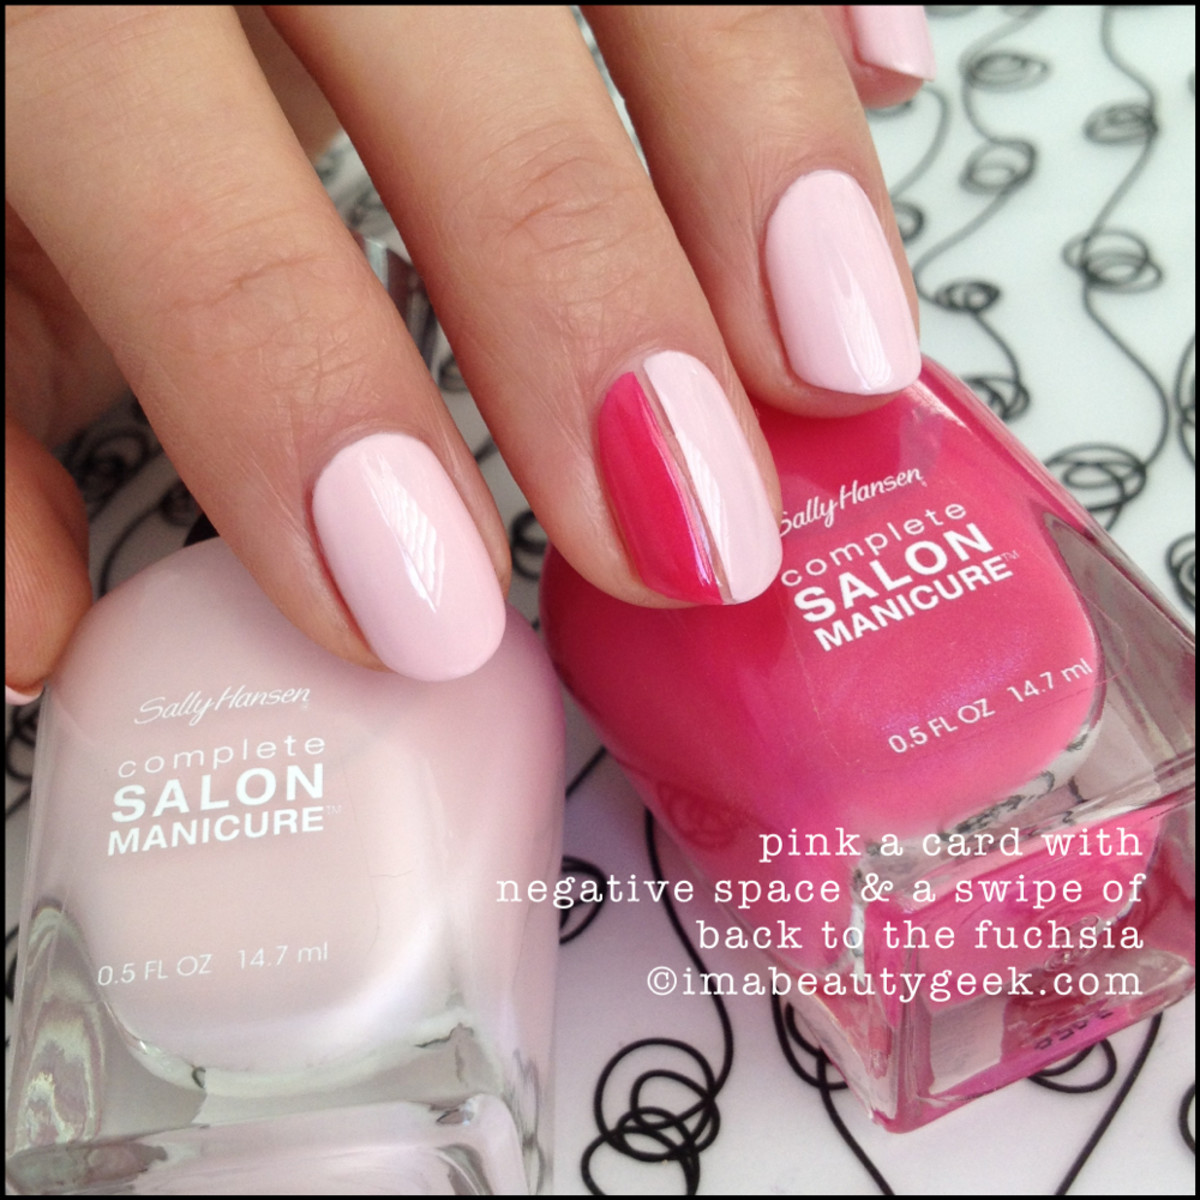 Tone-on-tone negative-space mani with Sally Hansen Complete Salon Manicure in Pink a Card and Back to the Fuchsia